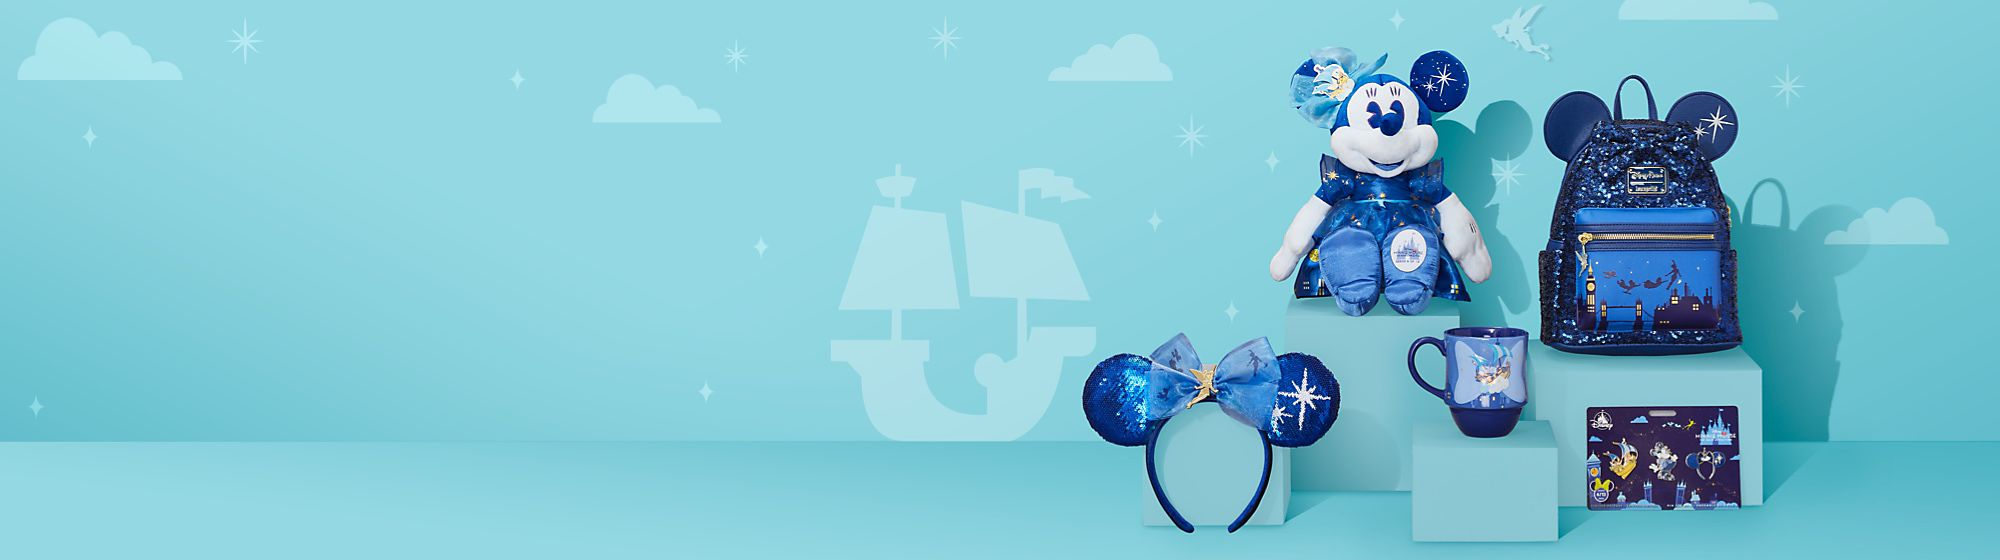 Peter Pan's Flight | Series 6 Make your way towards the second star to the right with our enchanting collection